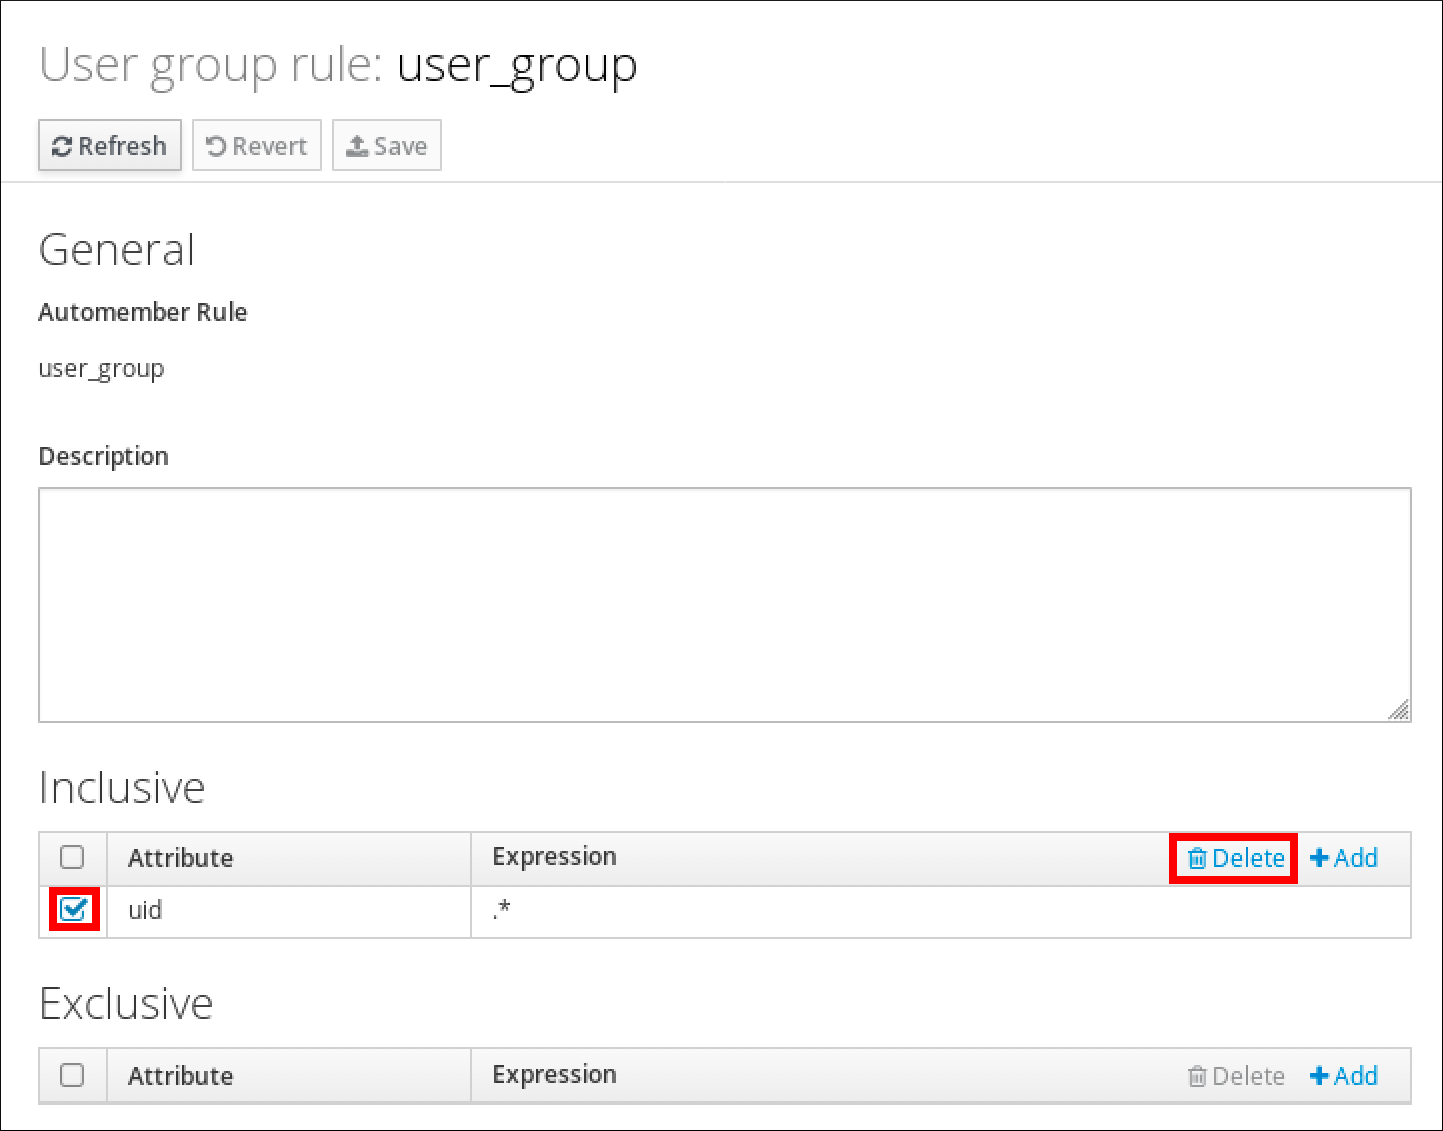 """A screenshot of the """"User group rule"""" page displaying information for """"user_group"""". An entry in the """"Inclusive"""" section has its checkbox checked and the """"Delete"""" button that pertains to the """"Inclusive"""" section is highlighted."""